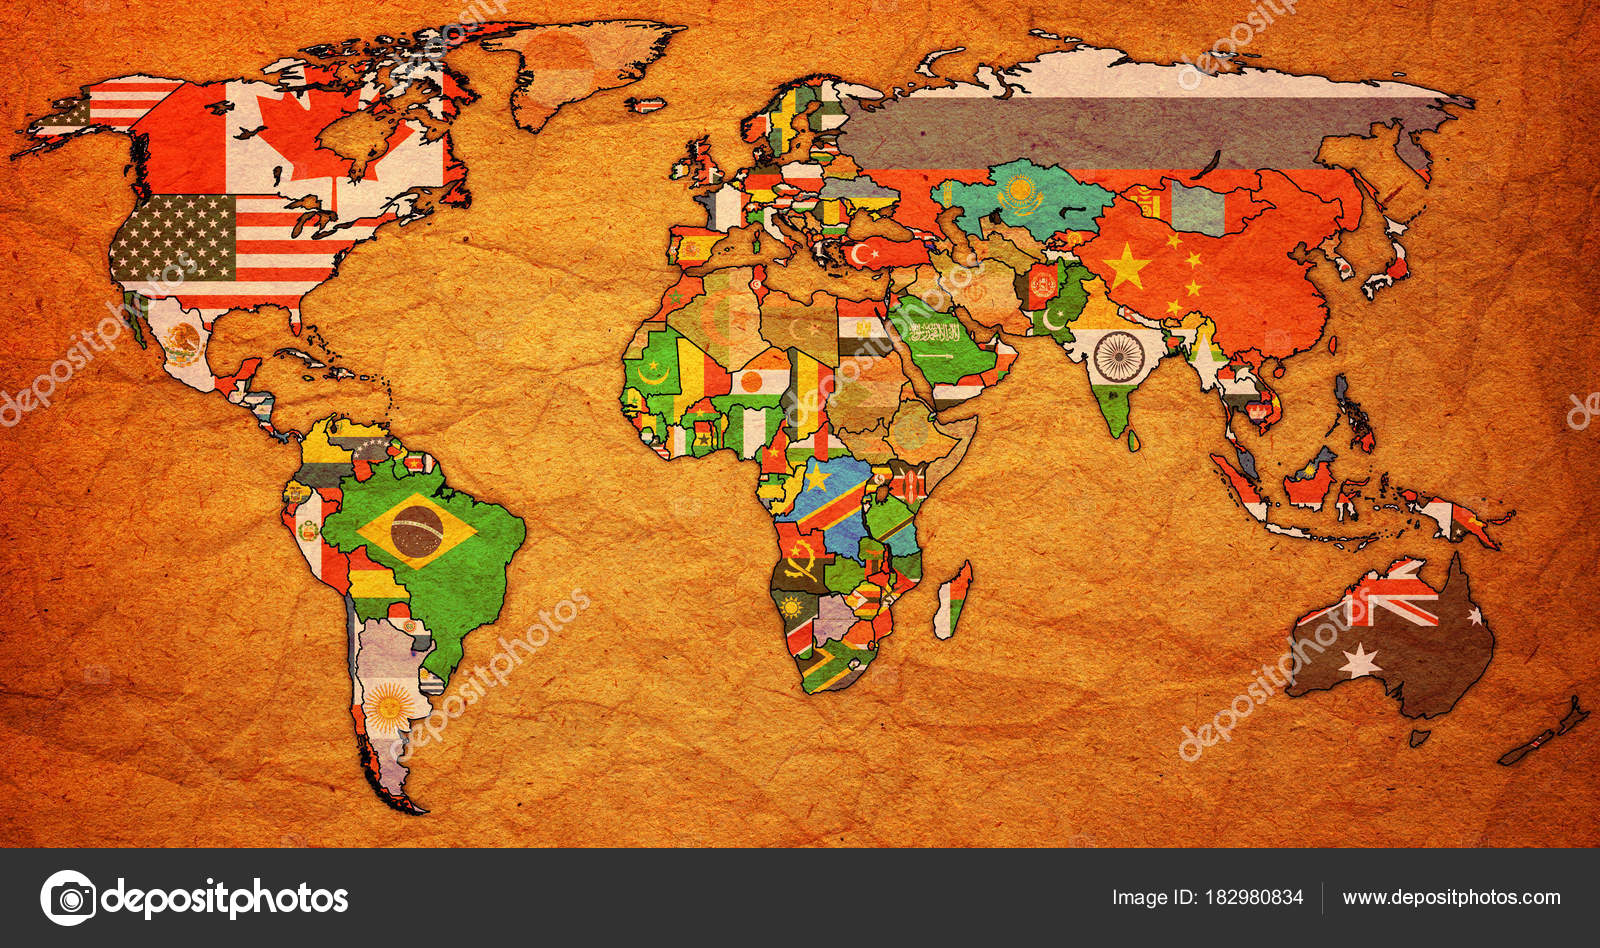 World trade organization territory on world map stock photo world trade organization member countries flags on world map with national borders photo by michal812 gumiabroncs Gallery